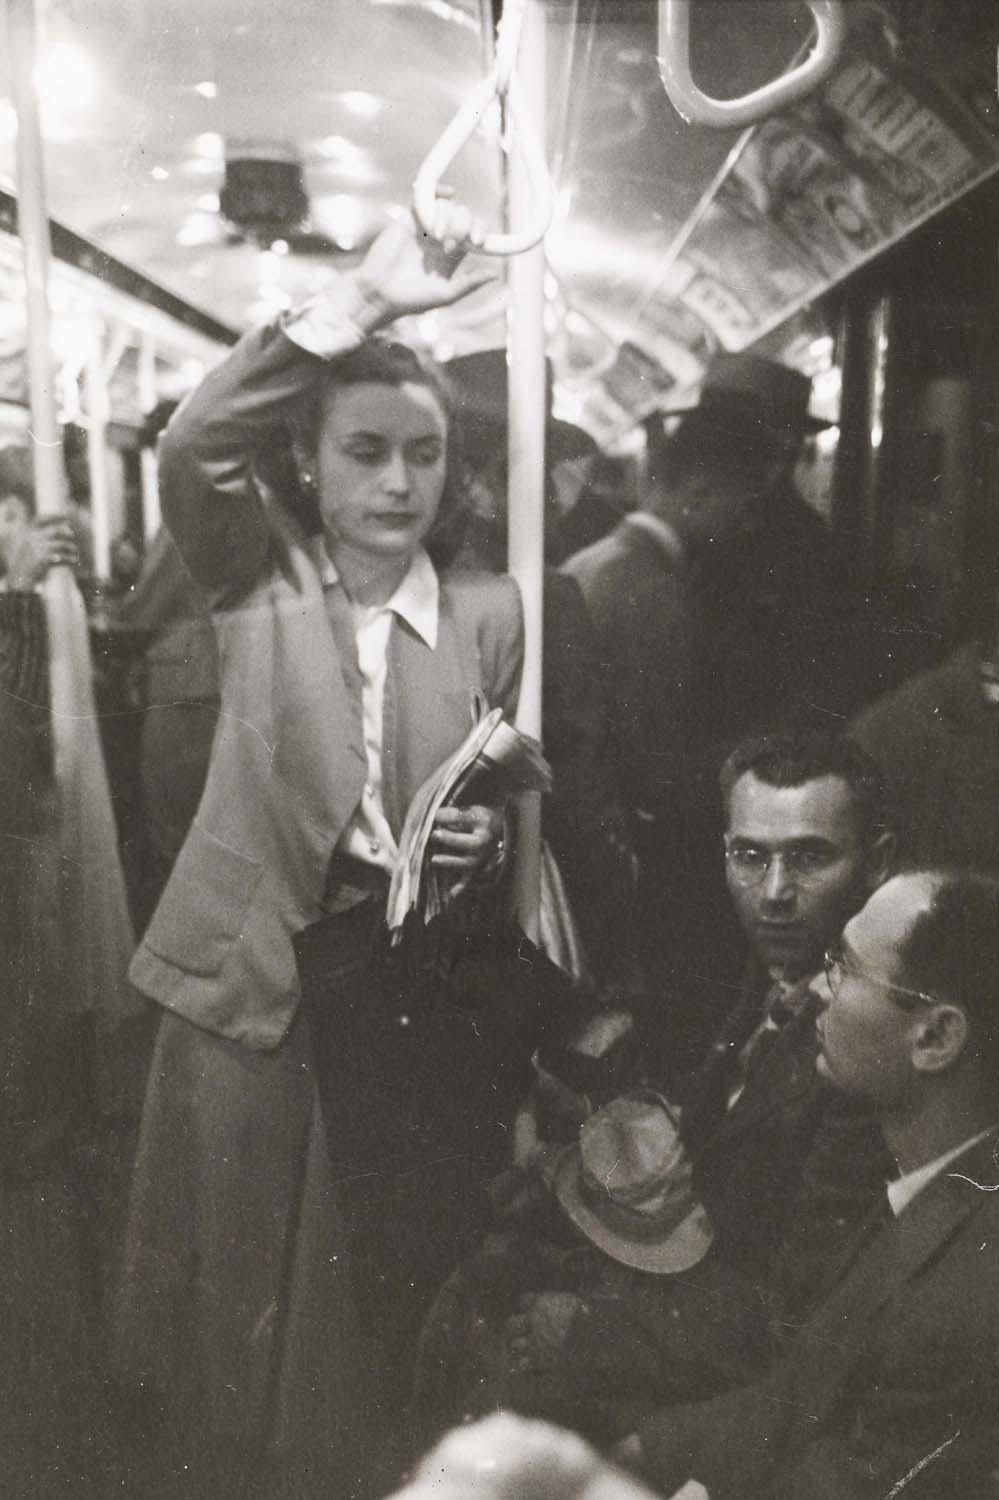 Stanley Kubrick. Life and Love on the New York City Subway. Passengers in a subway car. 1946. Museum of the City of New York. X2011.4.10292.56E